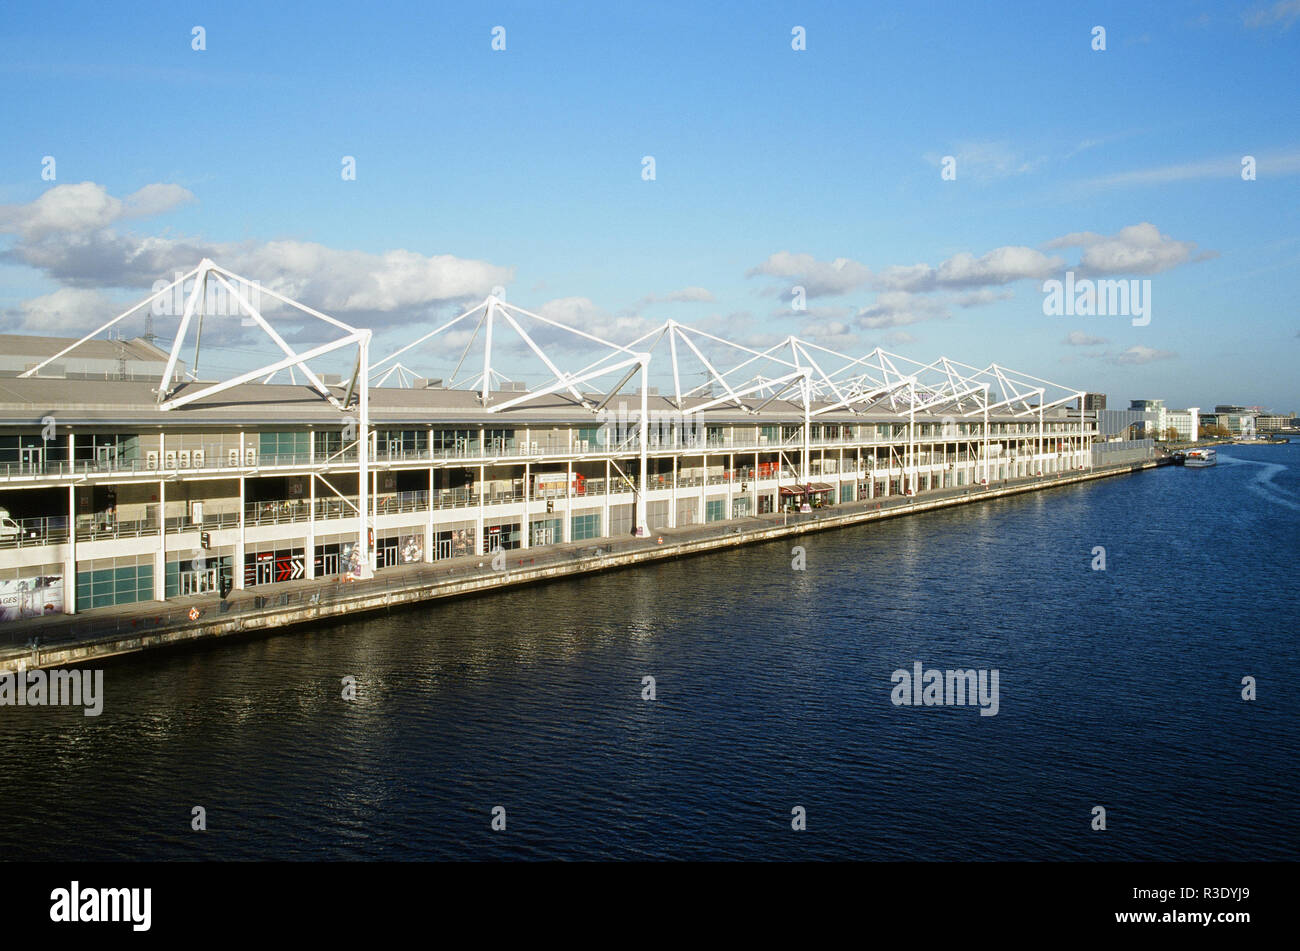 Exterior of the Excel Arena, Royal Victoria Dock, East London UK - Stock Image